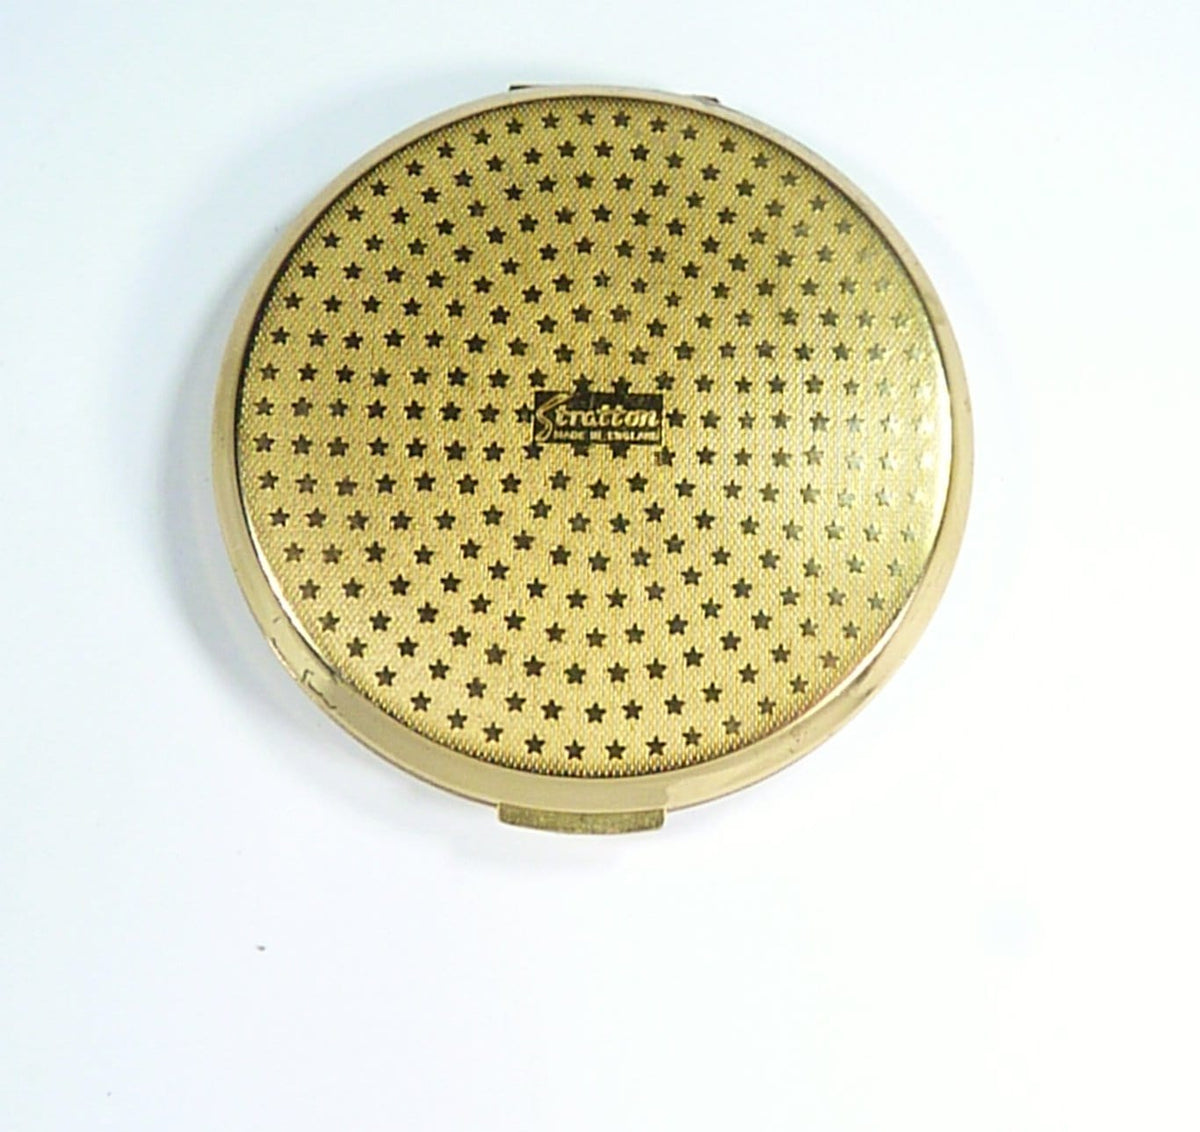 Vintage Compact Mirror For Max Factor